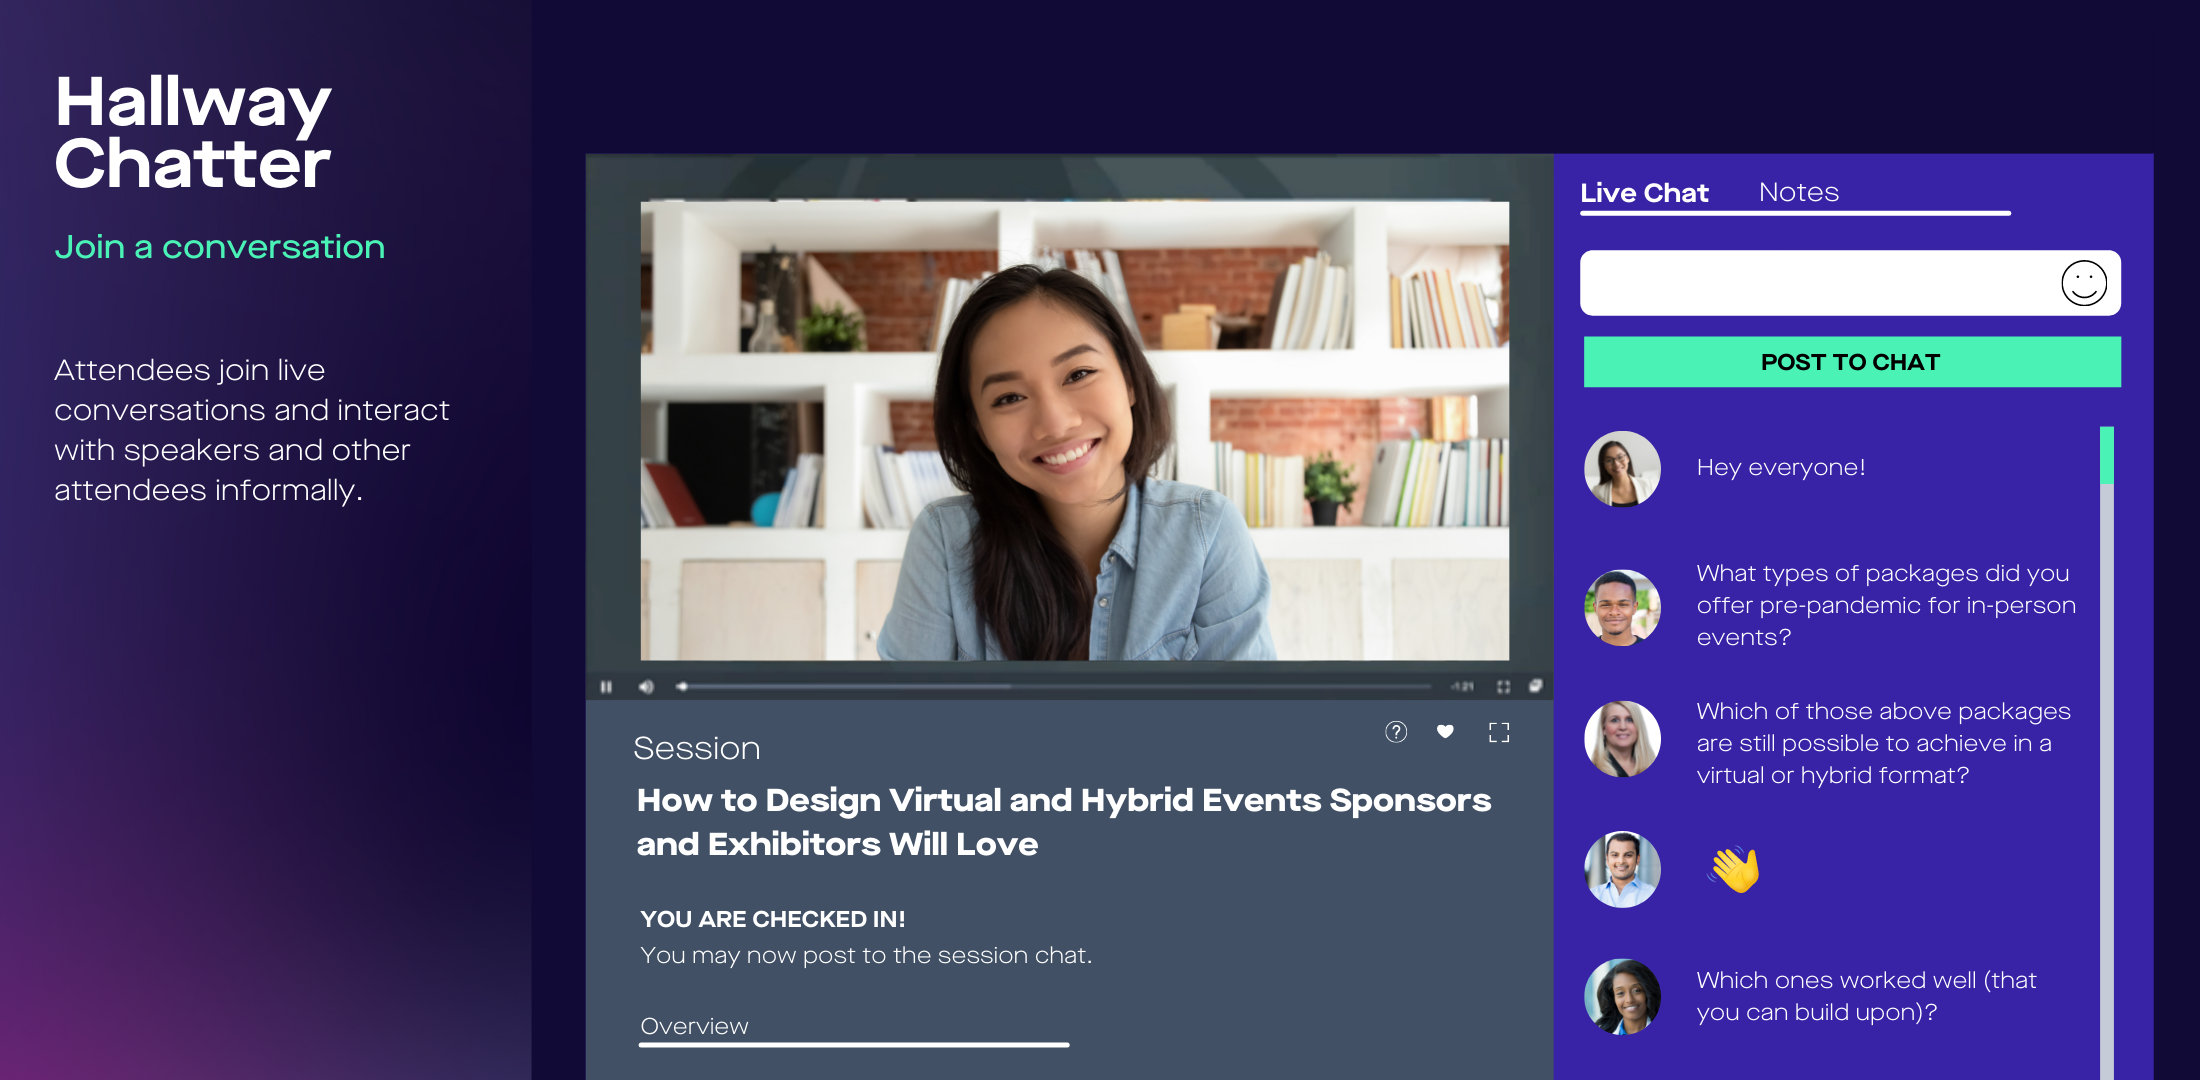 hallway chatter for virtual and hybrid events backend